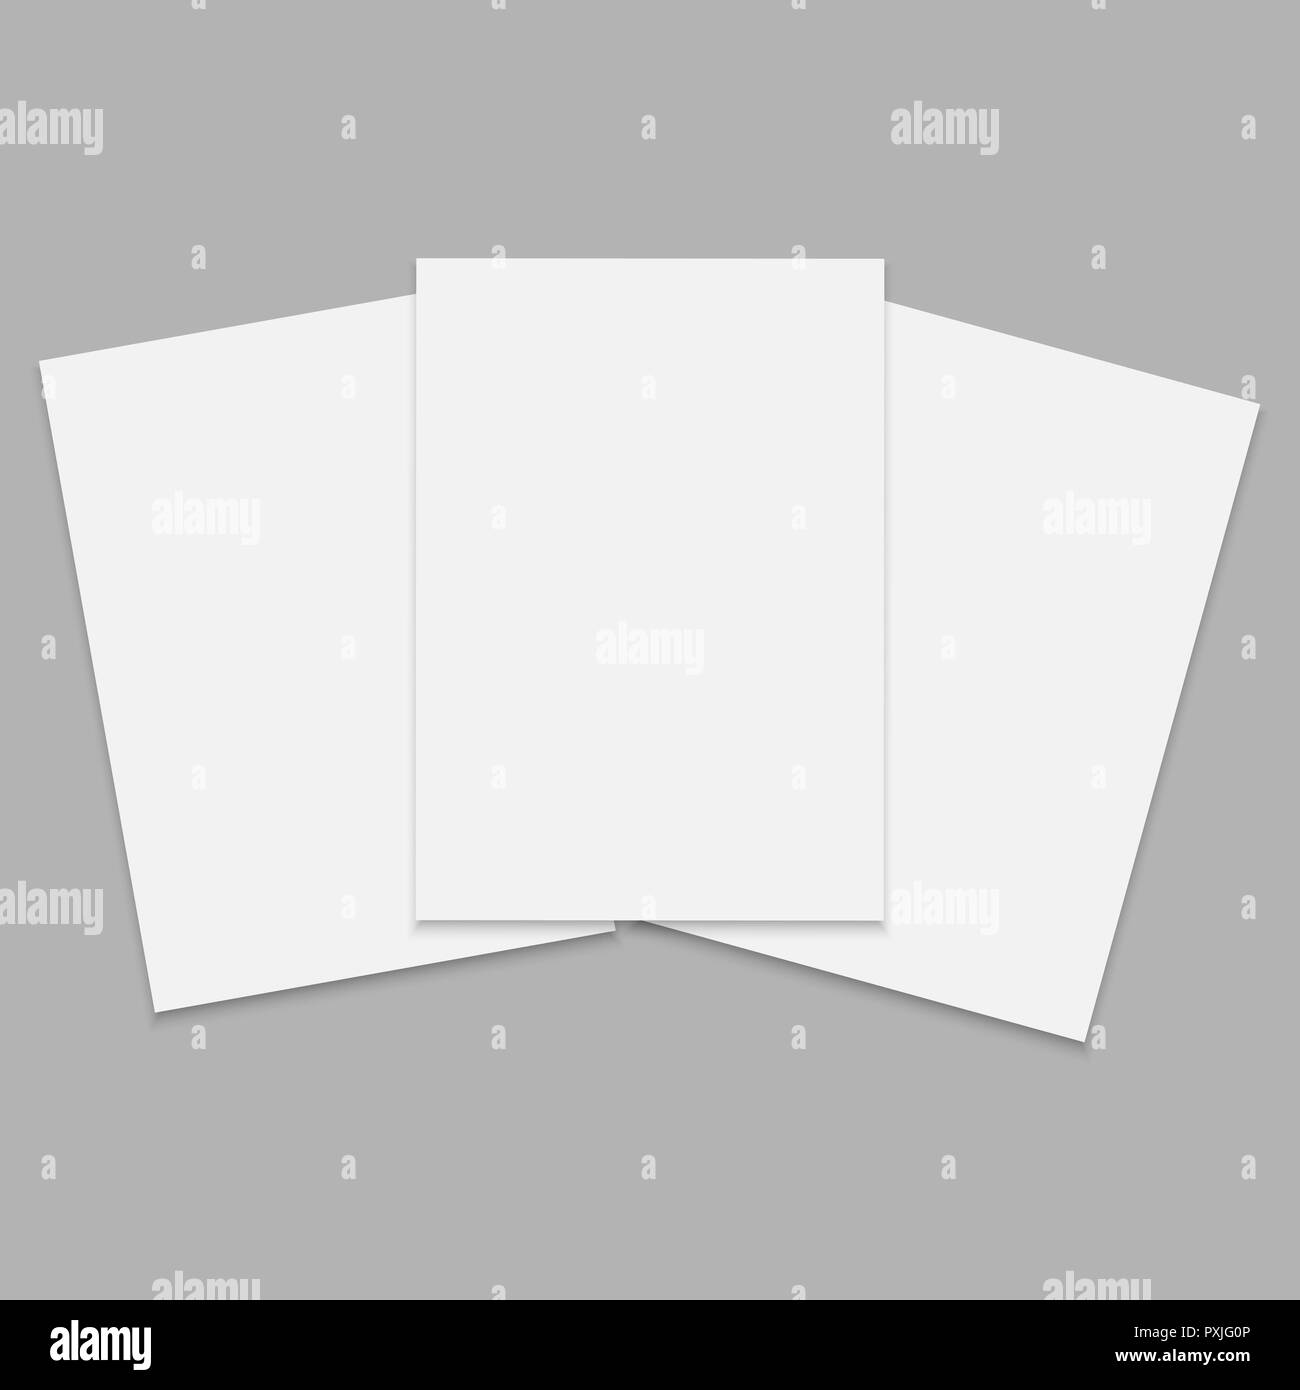 journal or magazine mockup with sheet of a4 blank front template